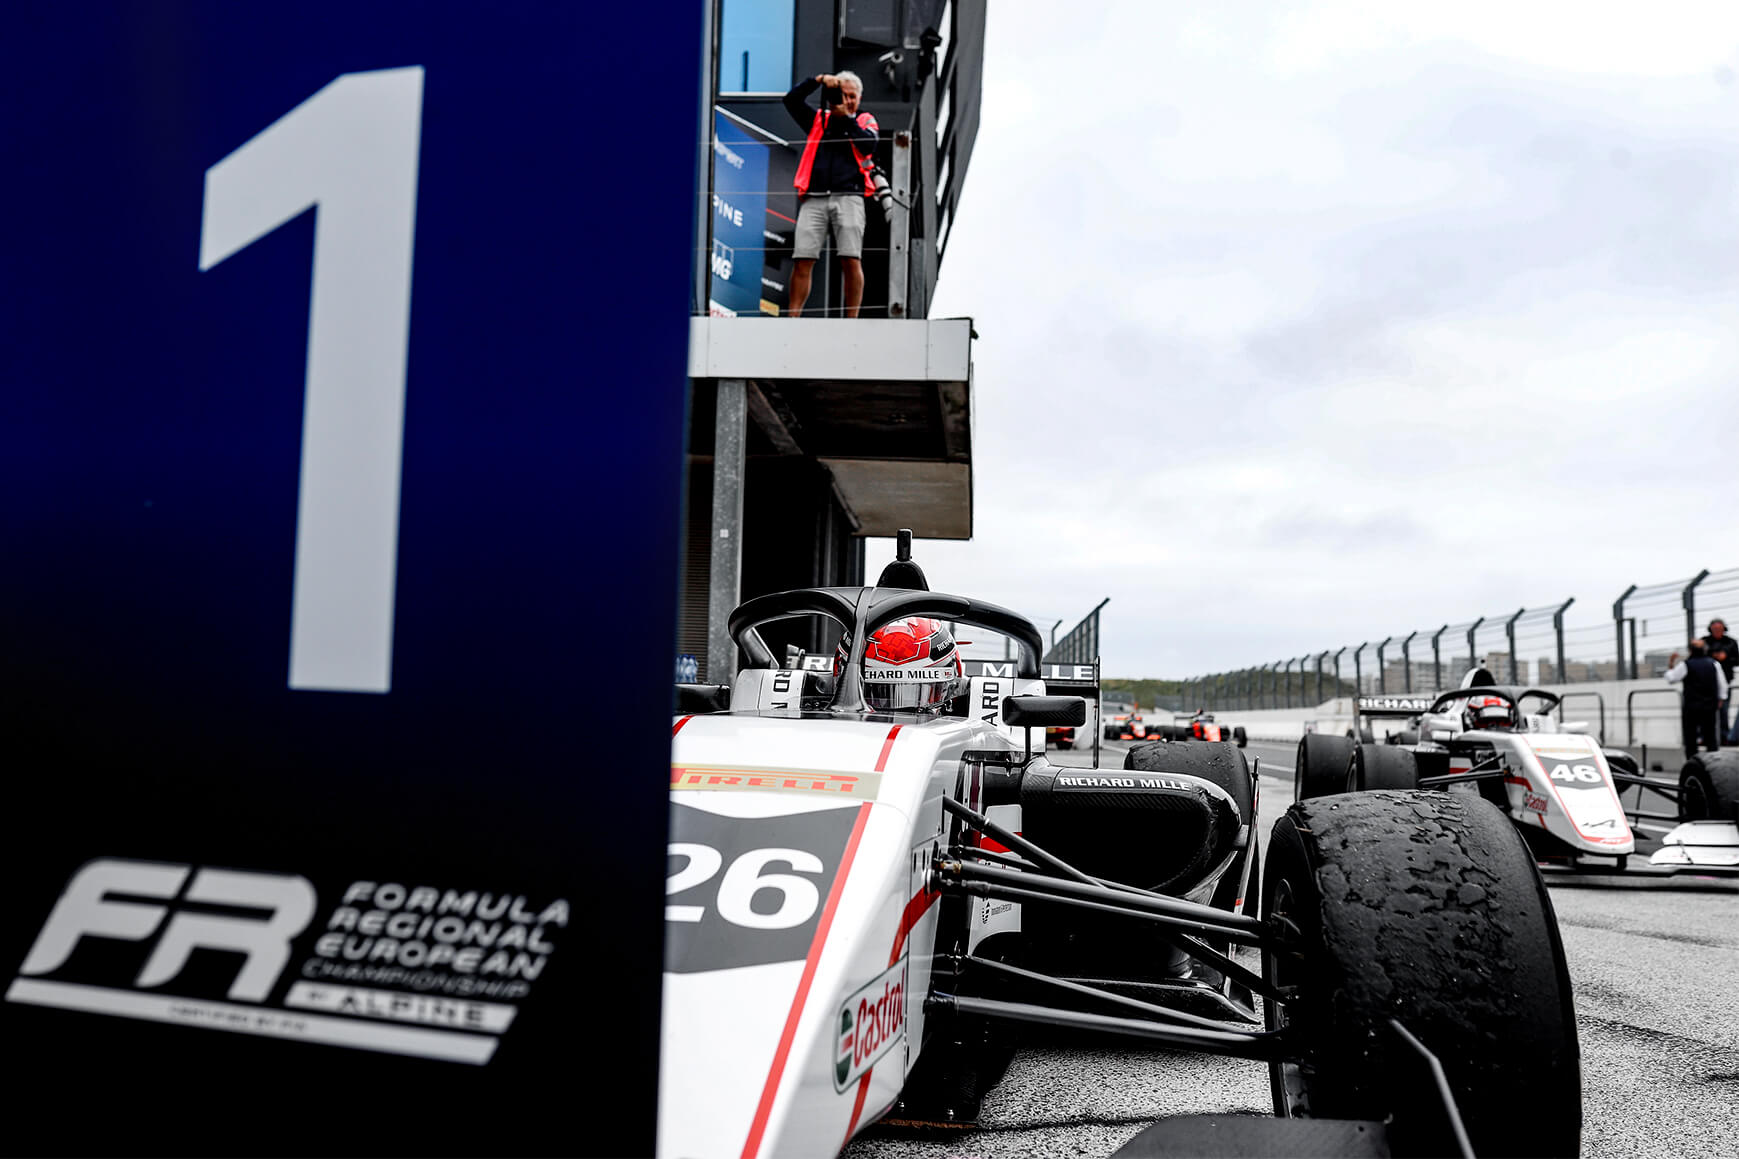 Double win, two pole positions and four podium finishes in FRECA